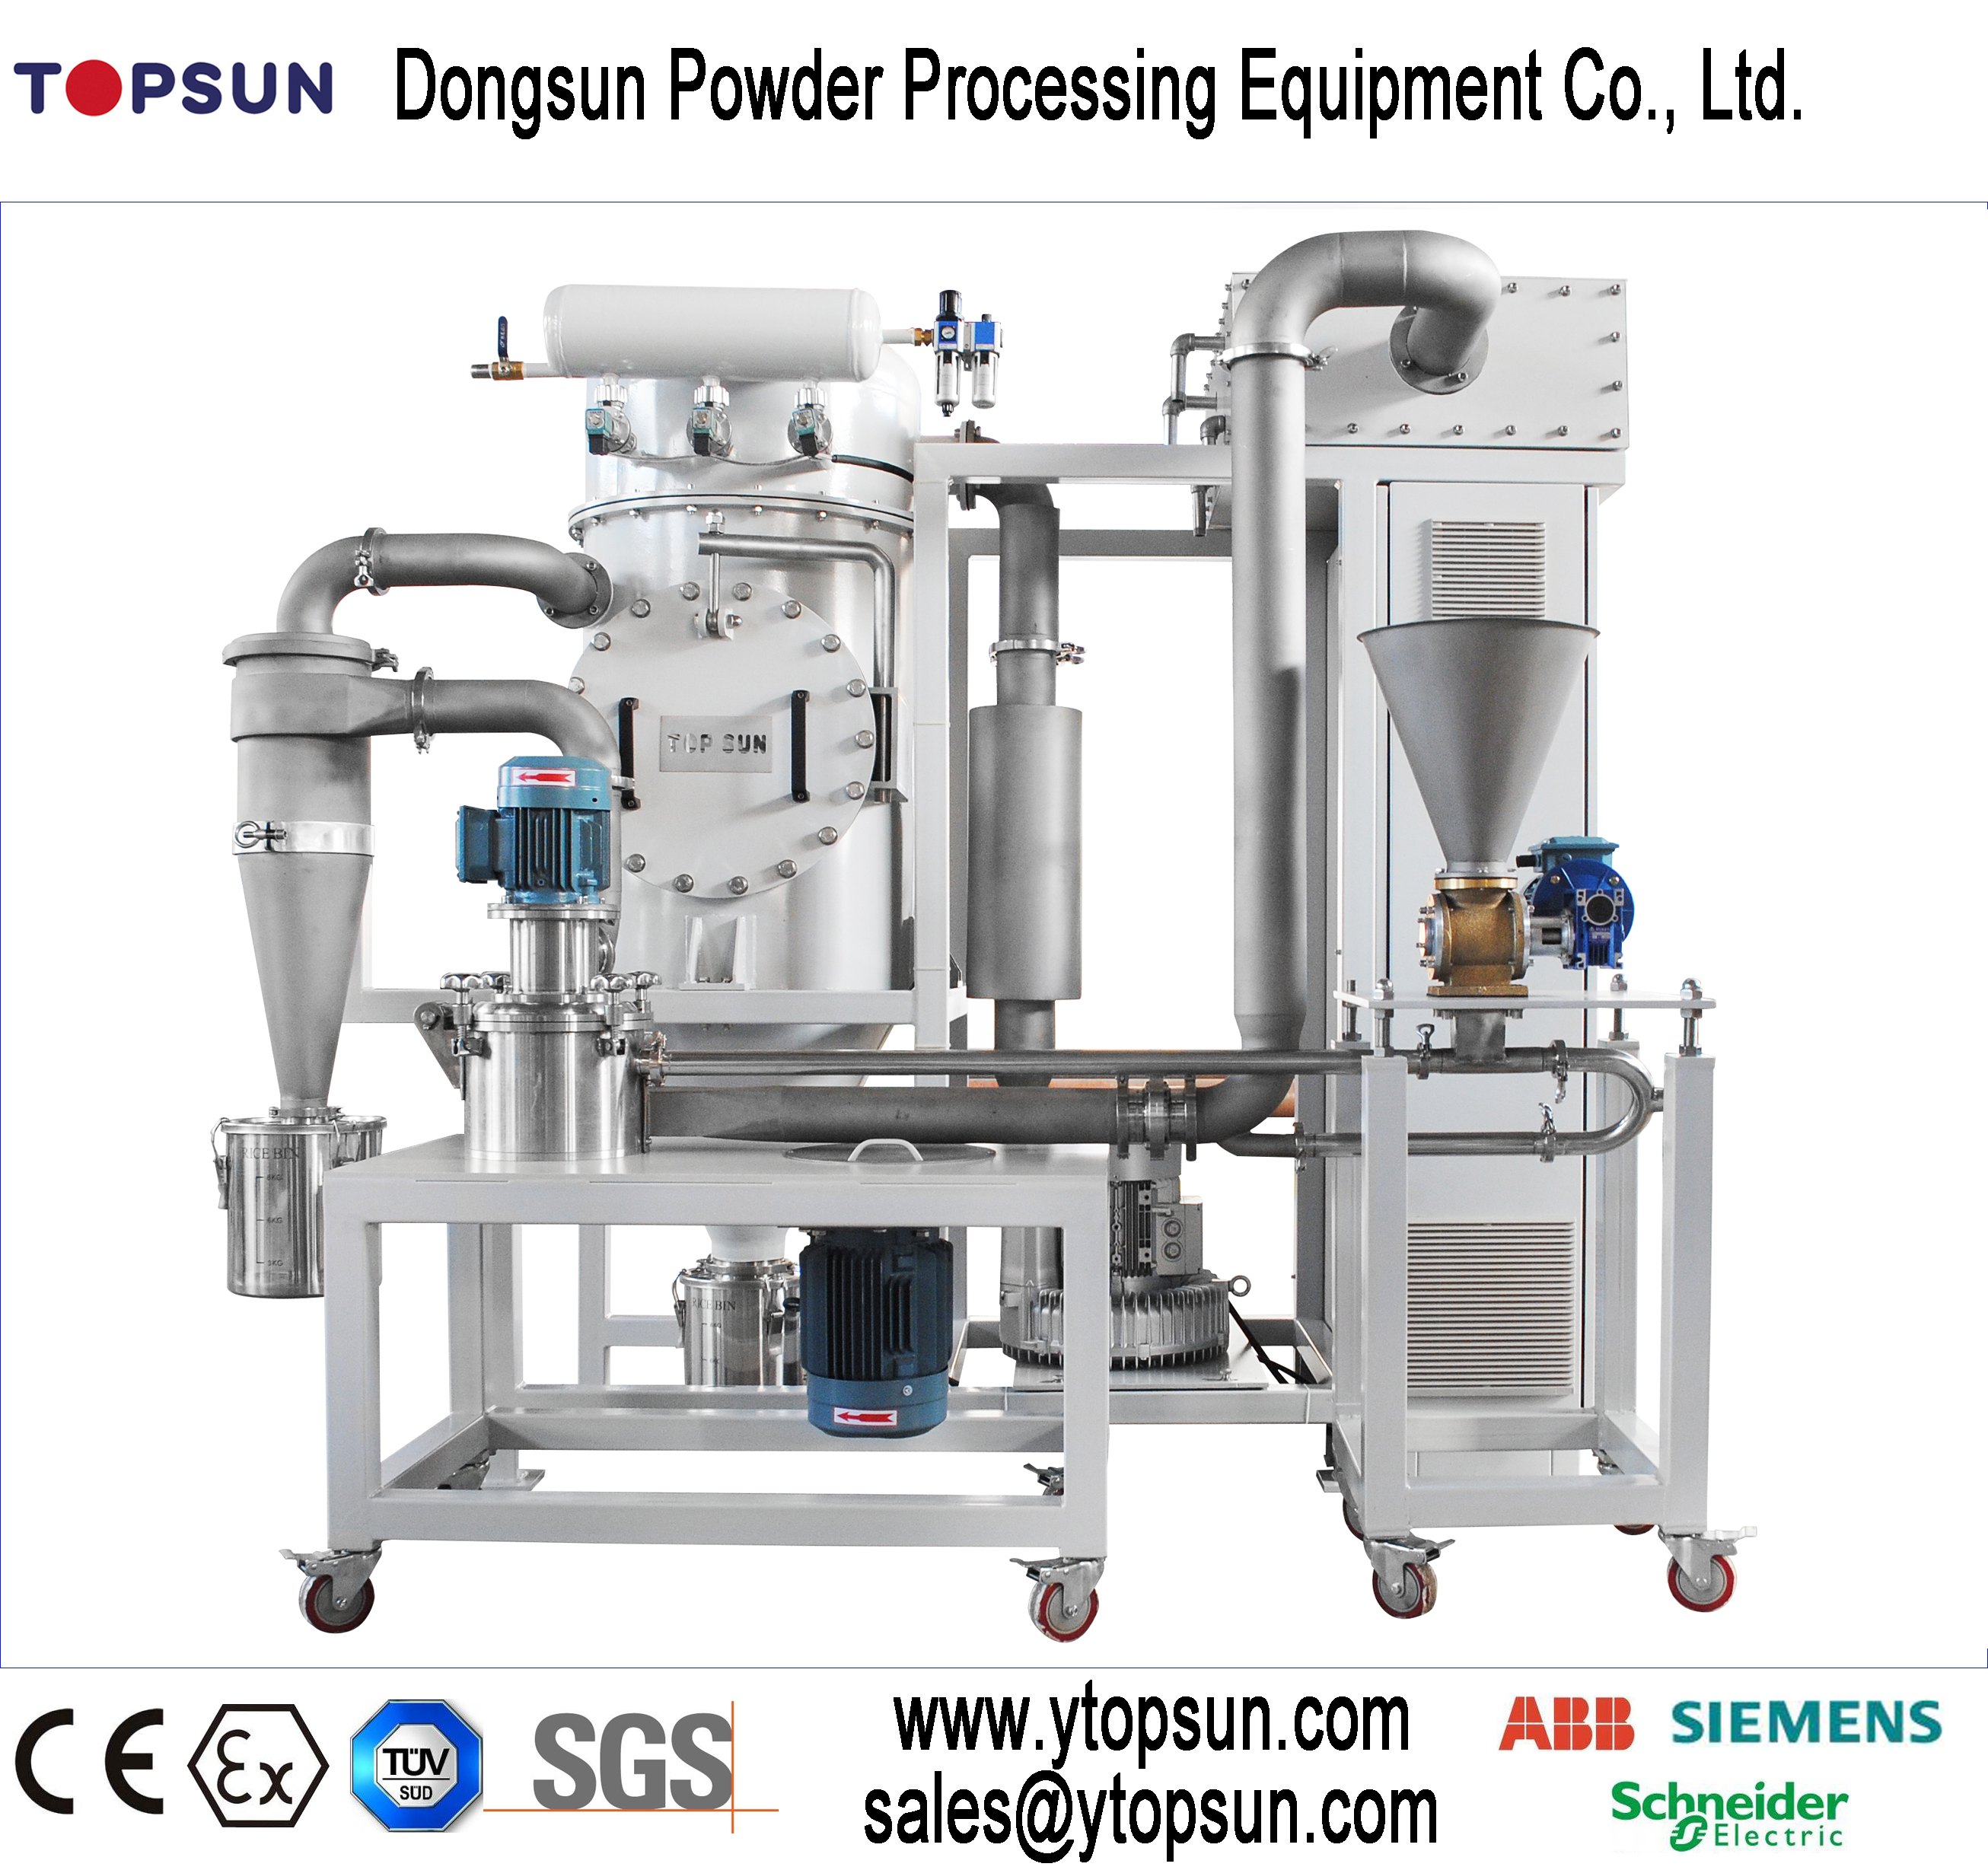 Silencing 1000Kg Electrostatic Powder ACM MILL